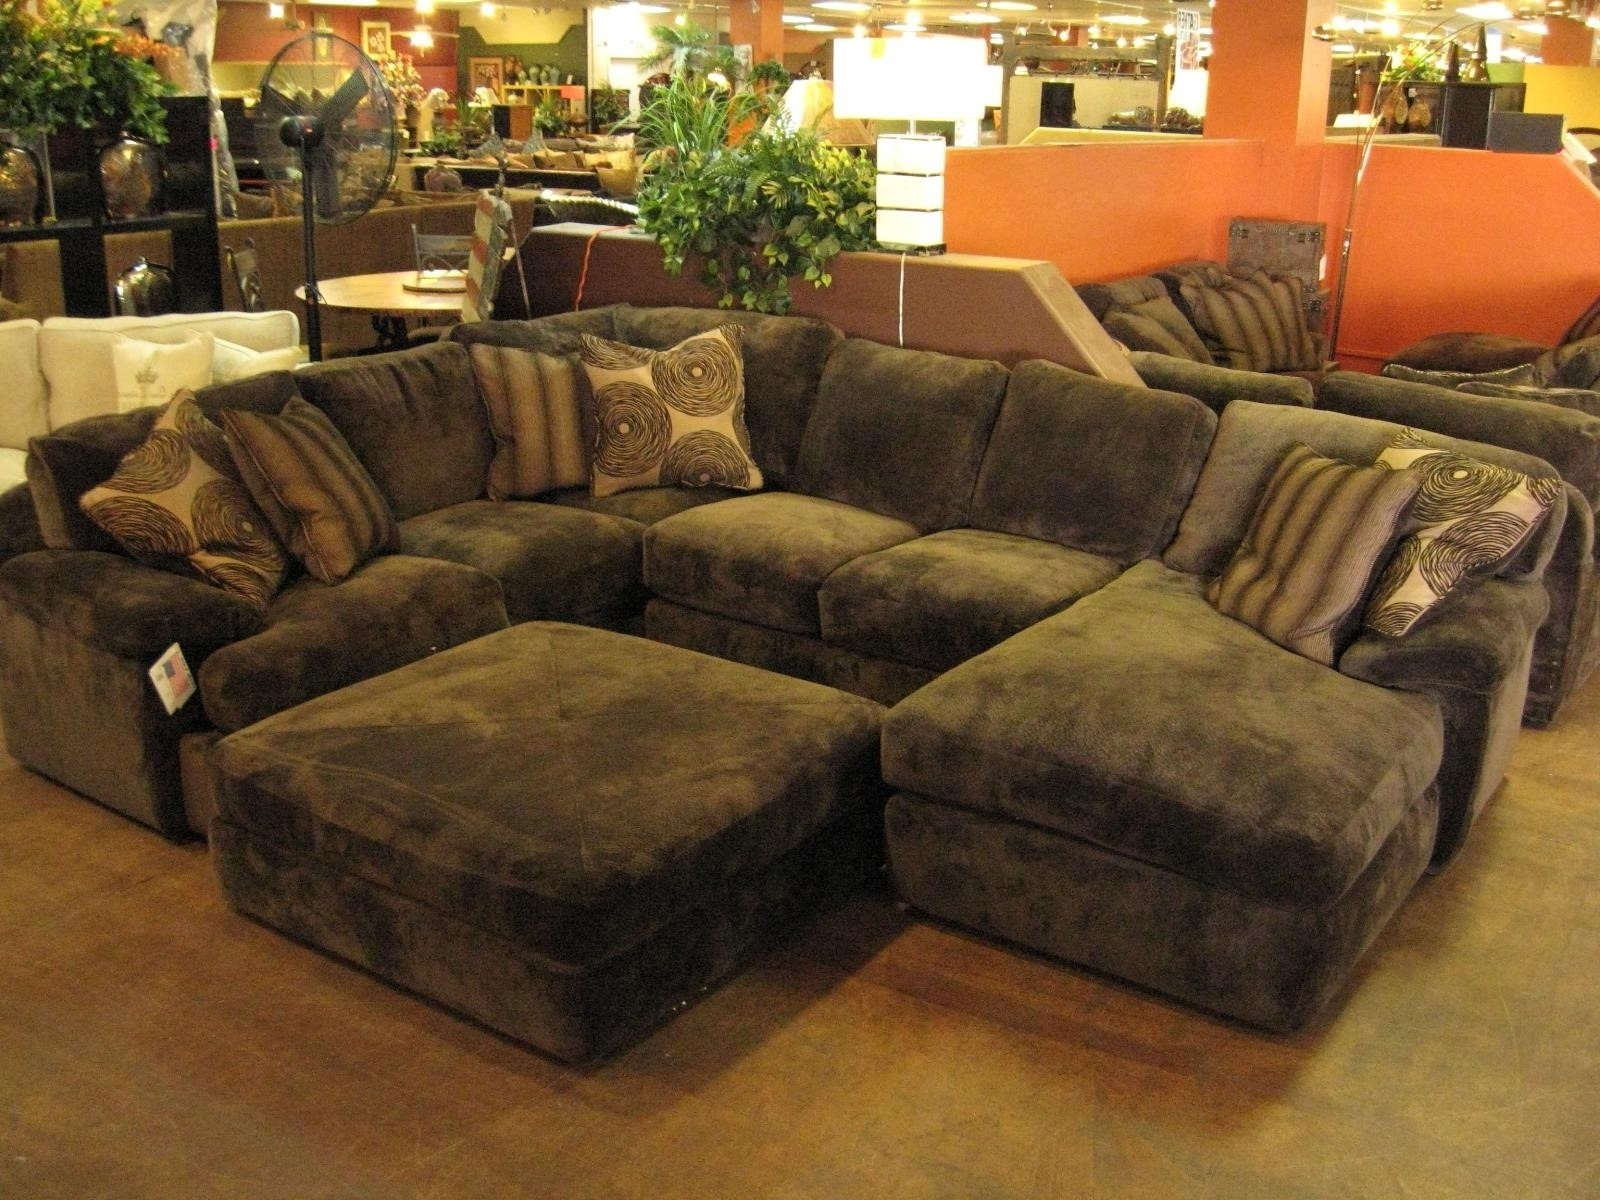 Large Sectional Sofa With Ottoman Black Leather 2 Seater Stock Regarding Sectional Couches With Large Ottoman (View 9 of 10)